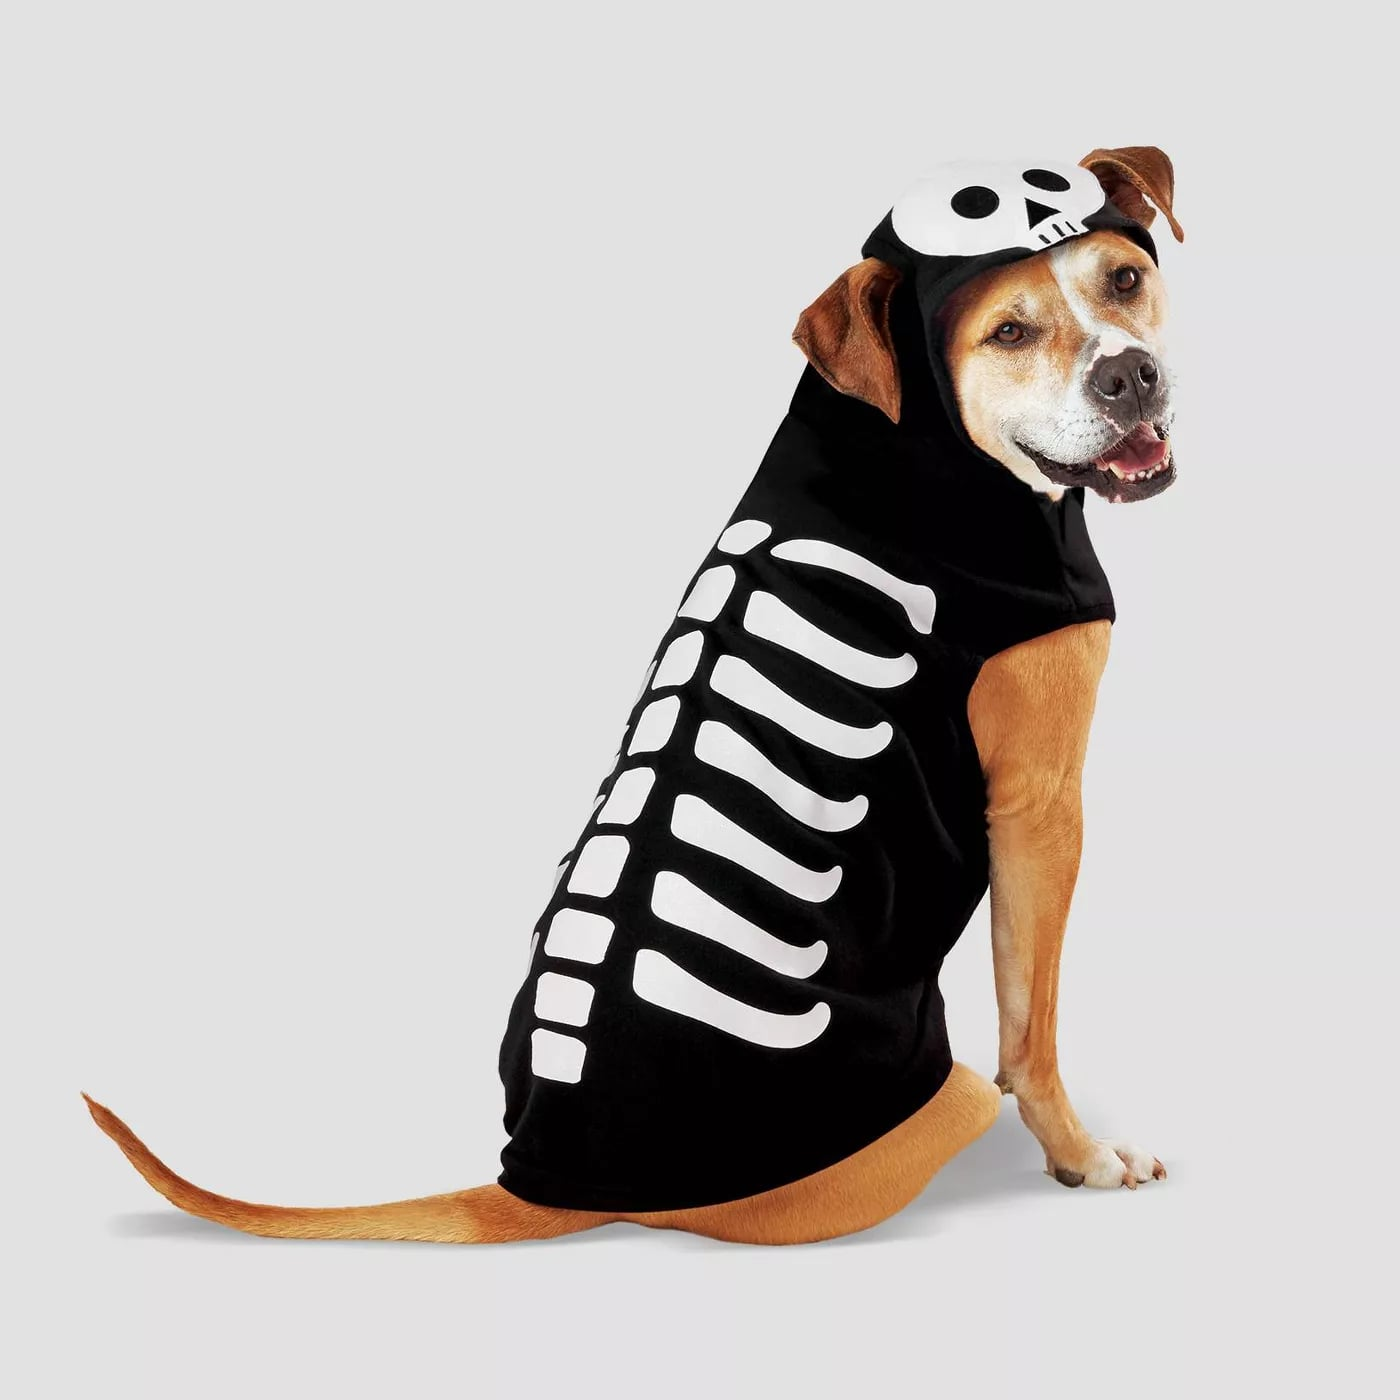 Pet Halloween Costumes For Cats And Dogs At Target 2020 Popsugar Pets